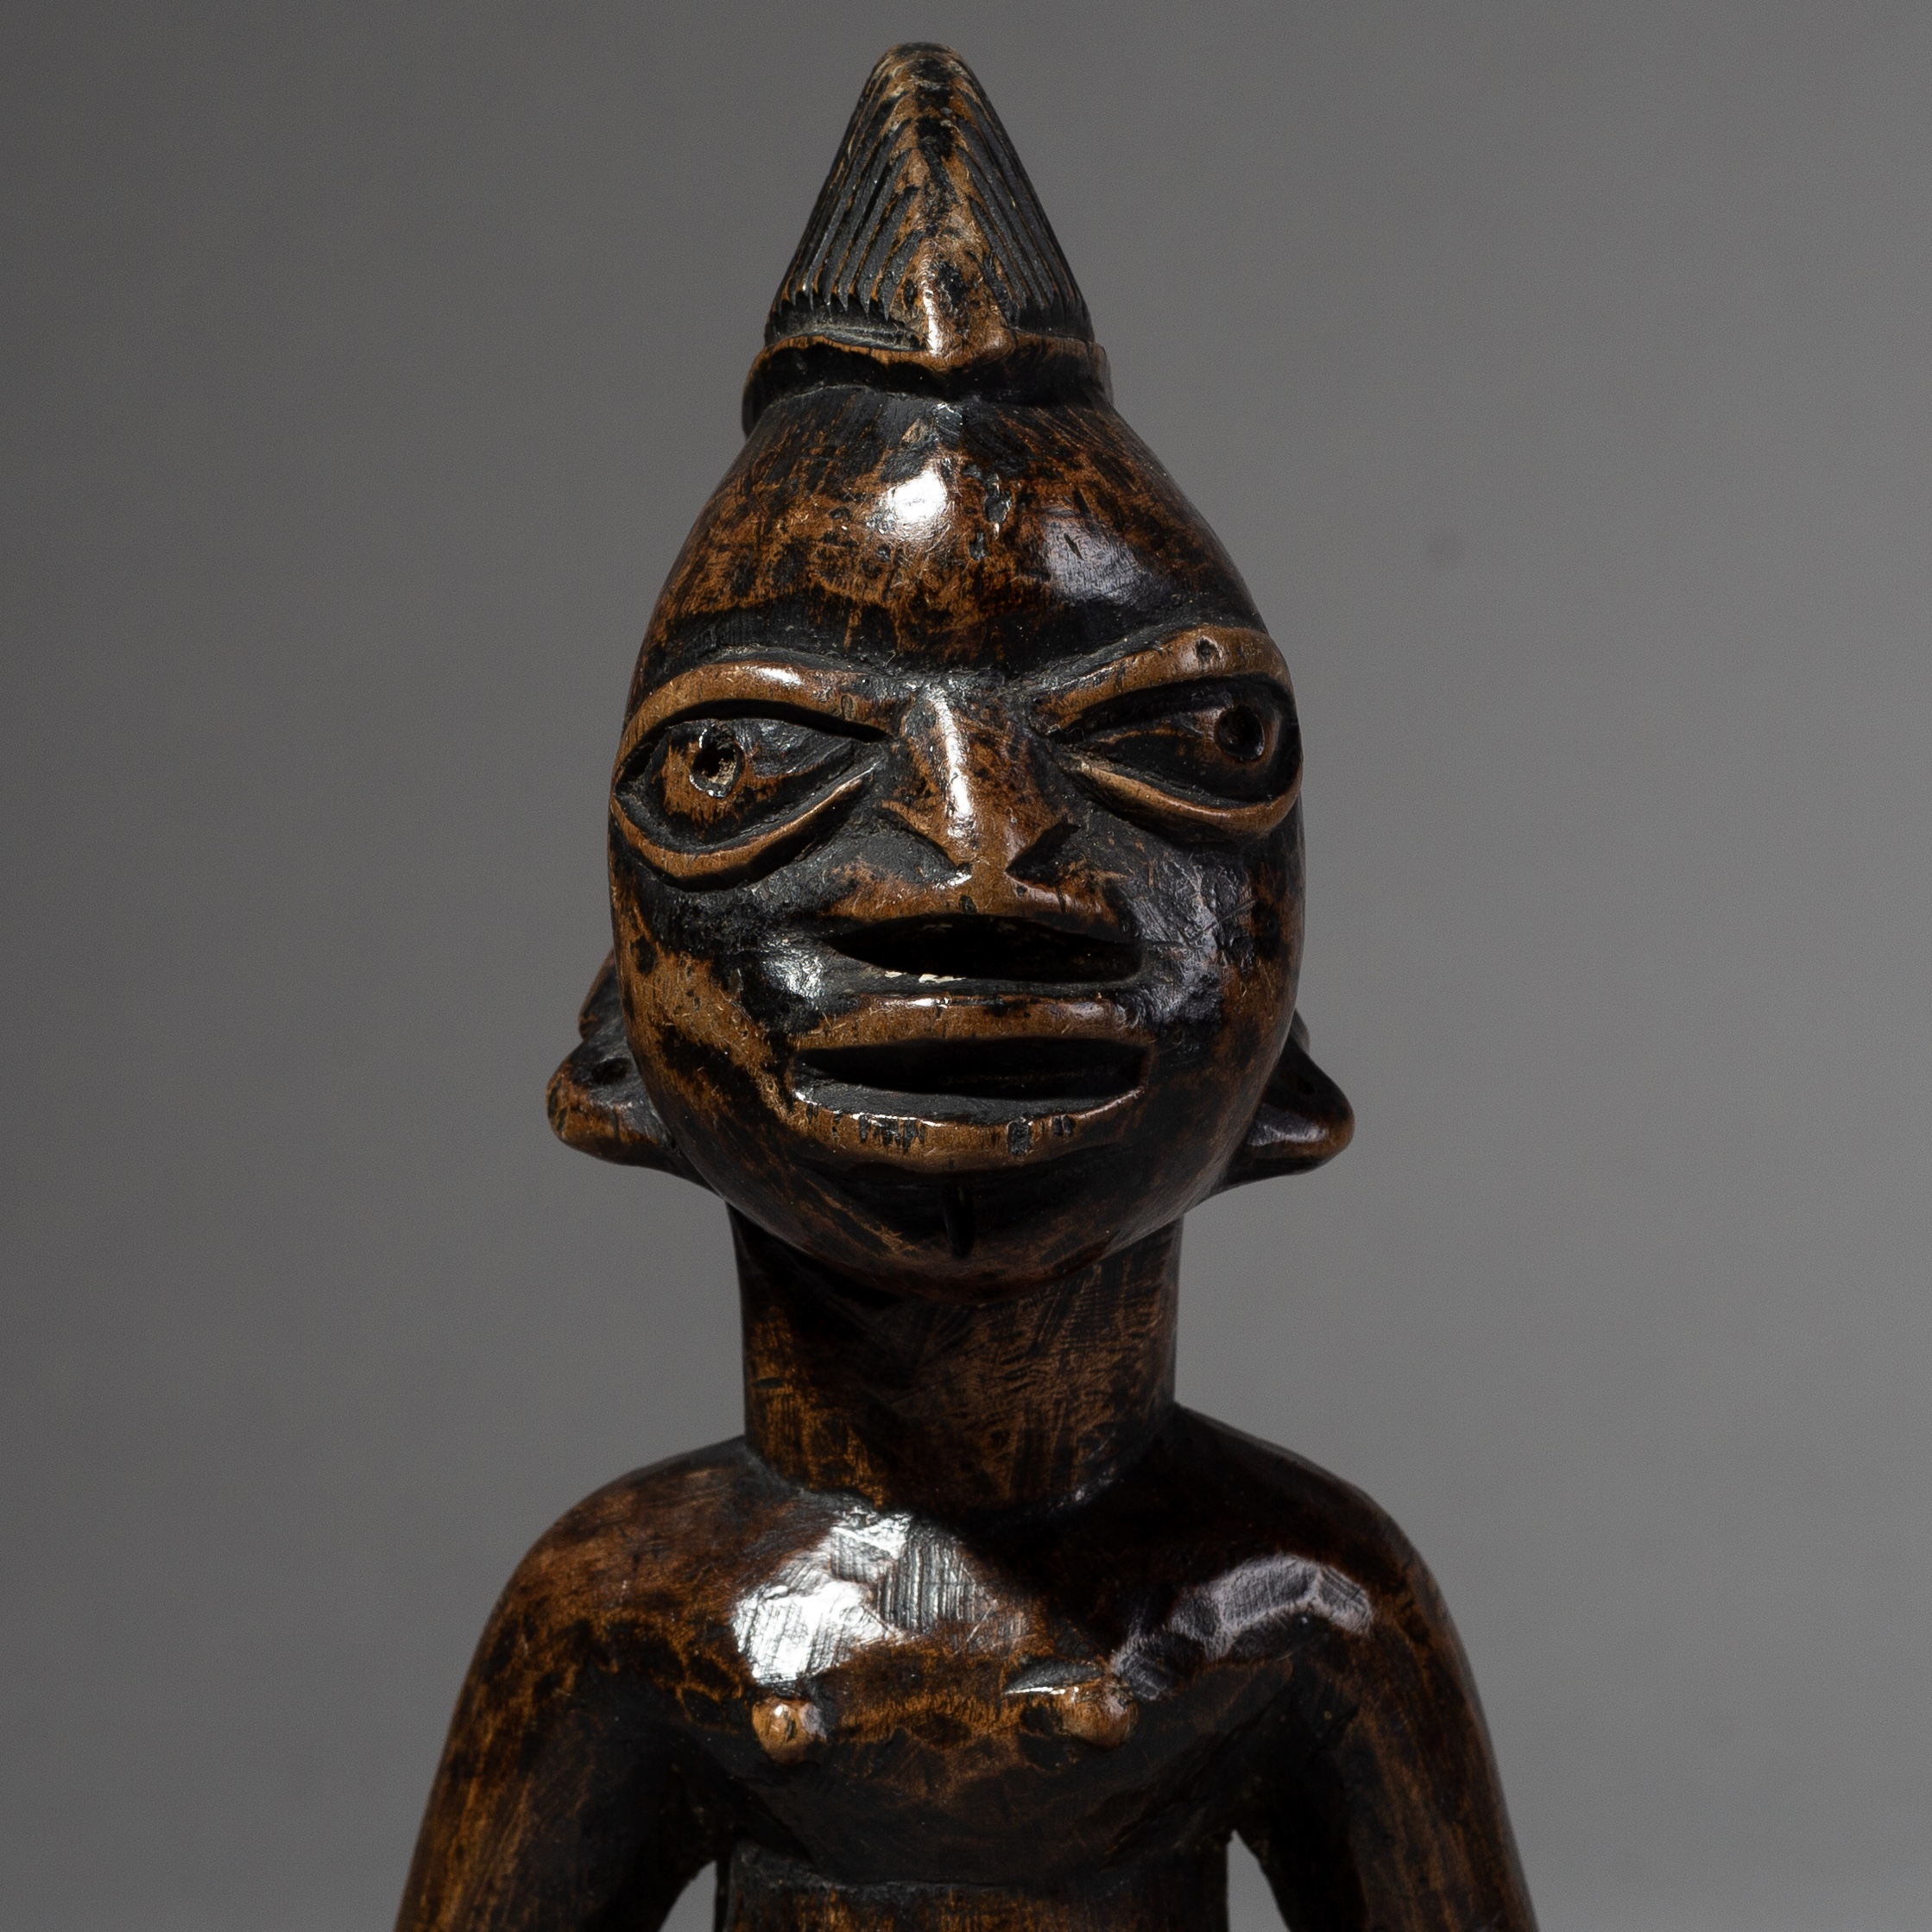 SD A FINE IBEJI DOLL FROM THE YORUBA TRIBE OF NIGERIA ( No 2096 )